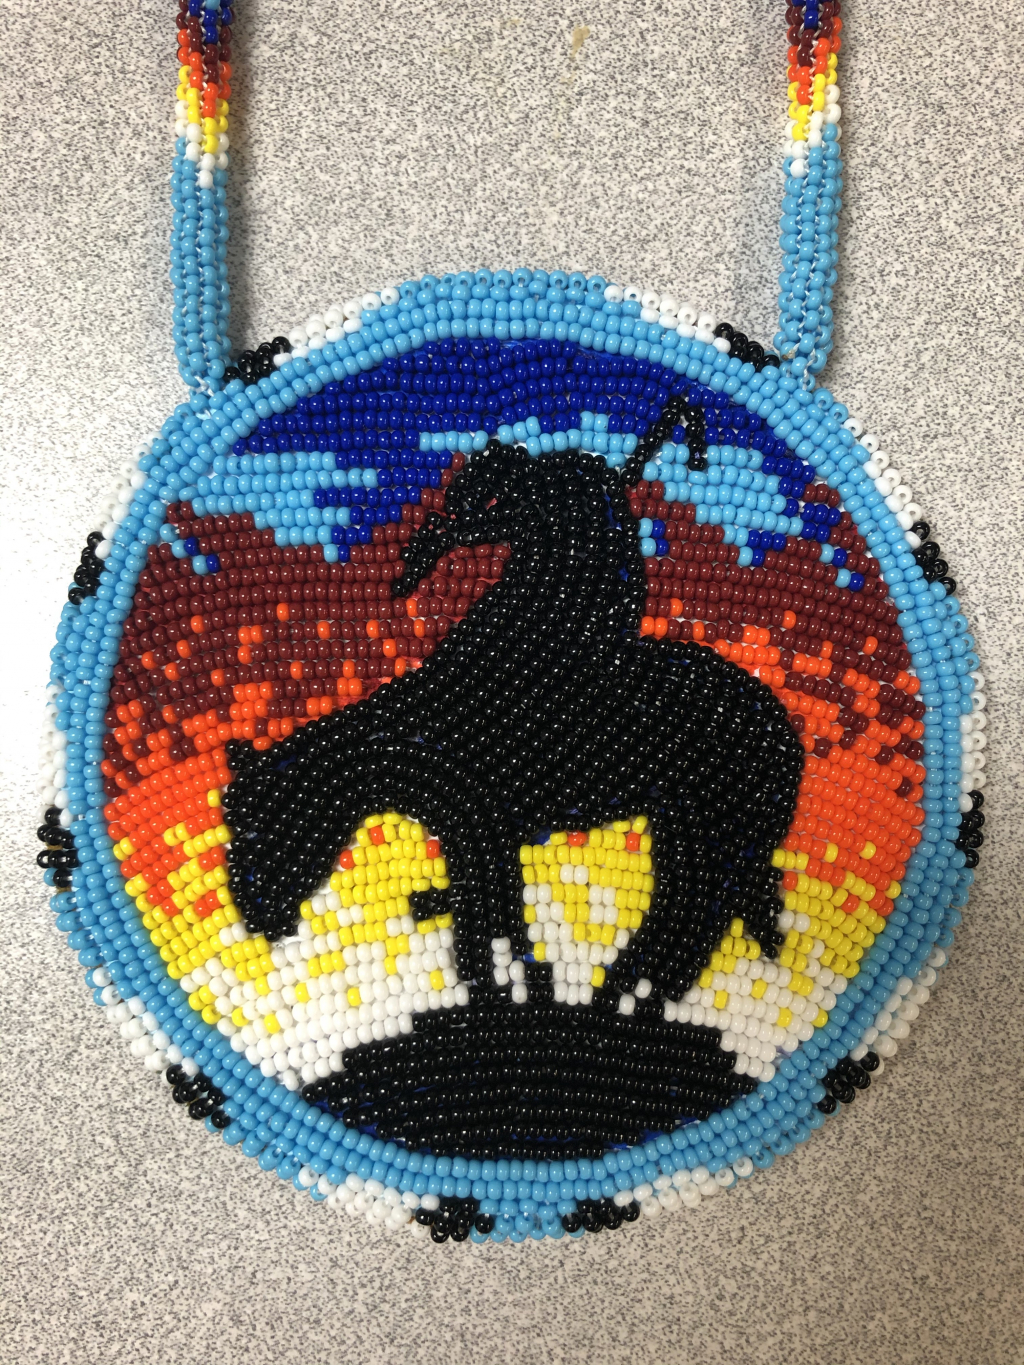 Thumbnail of: The End of the Trail medallion